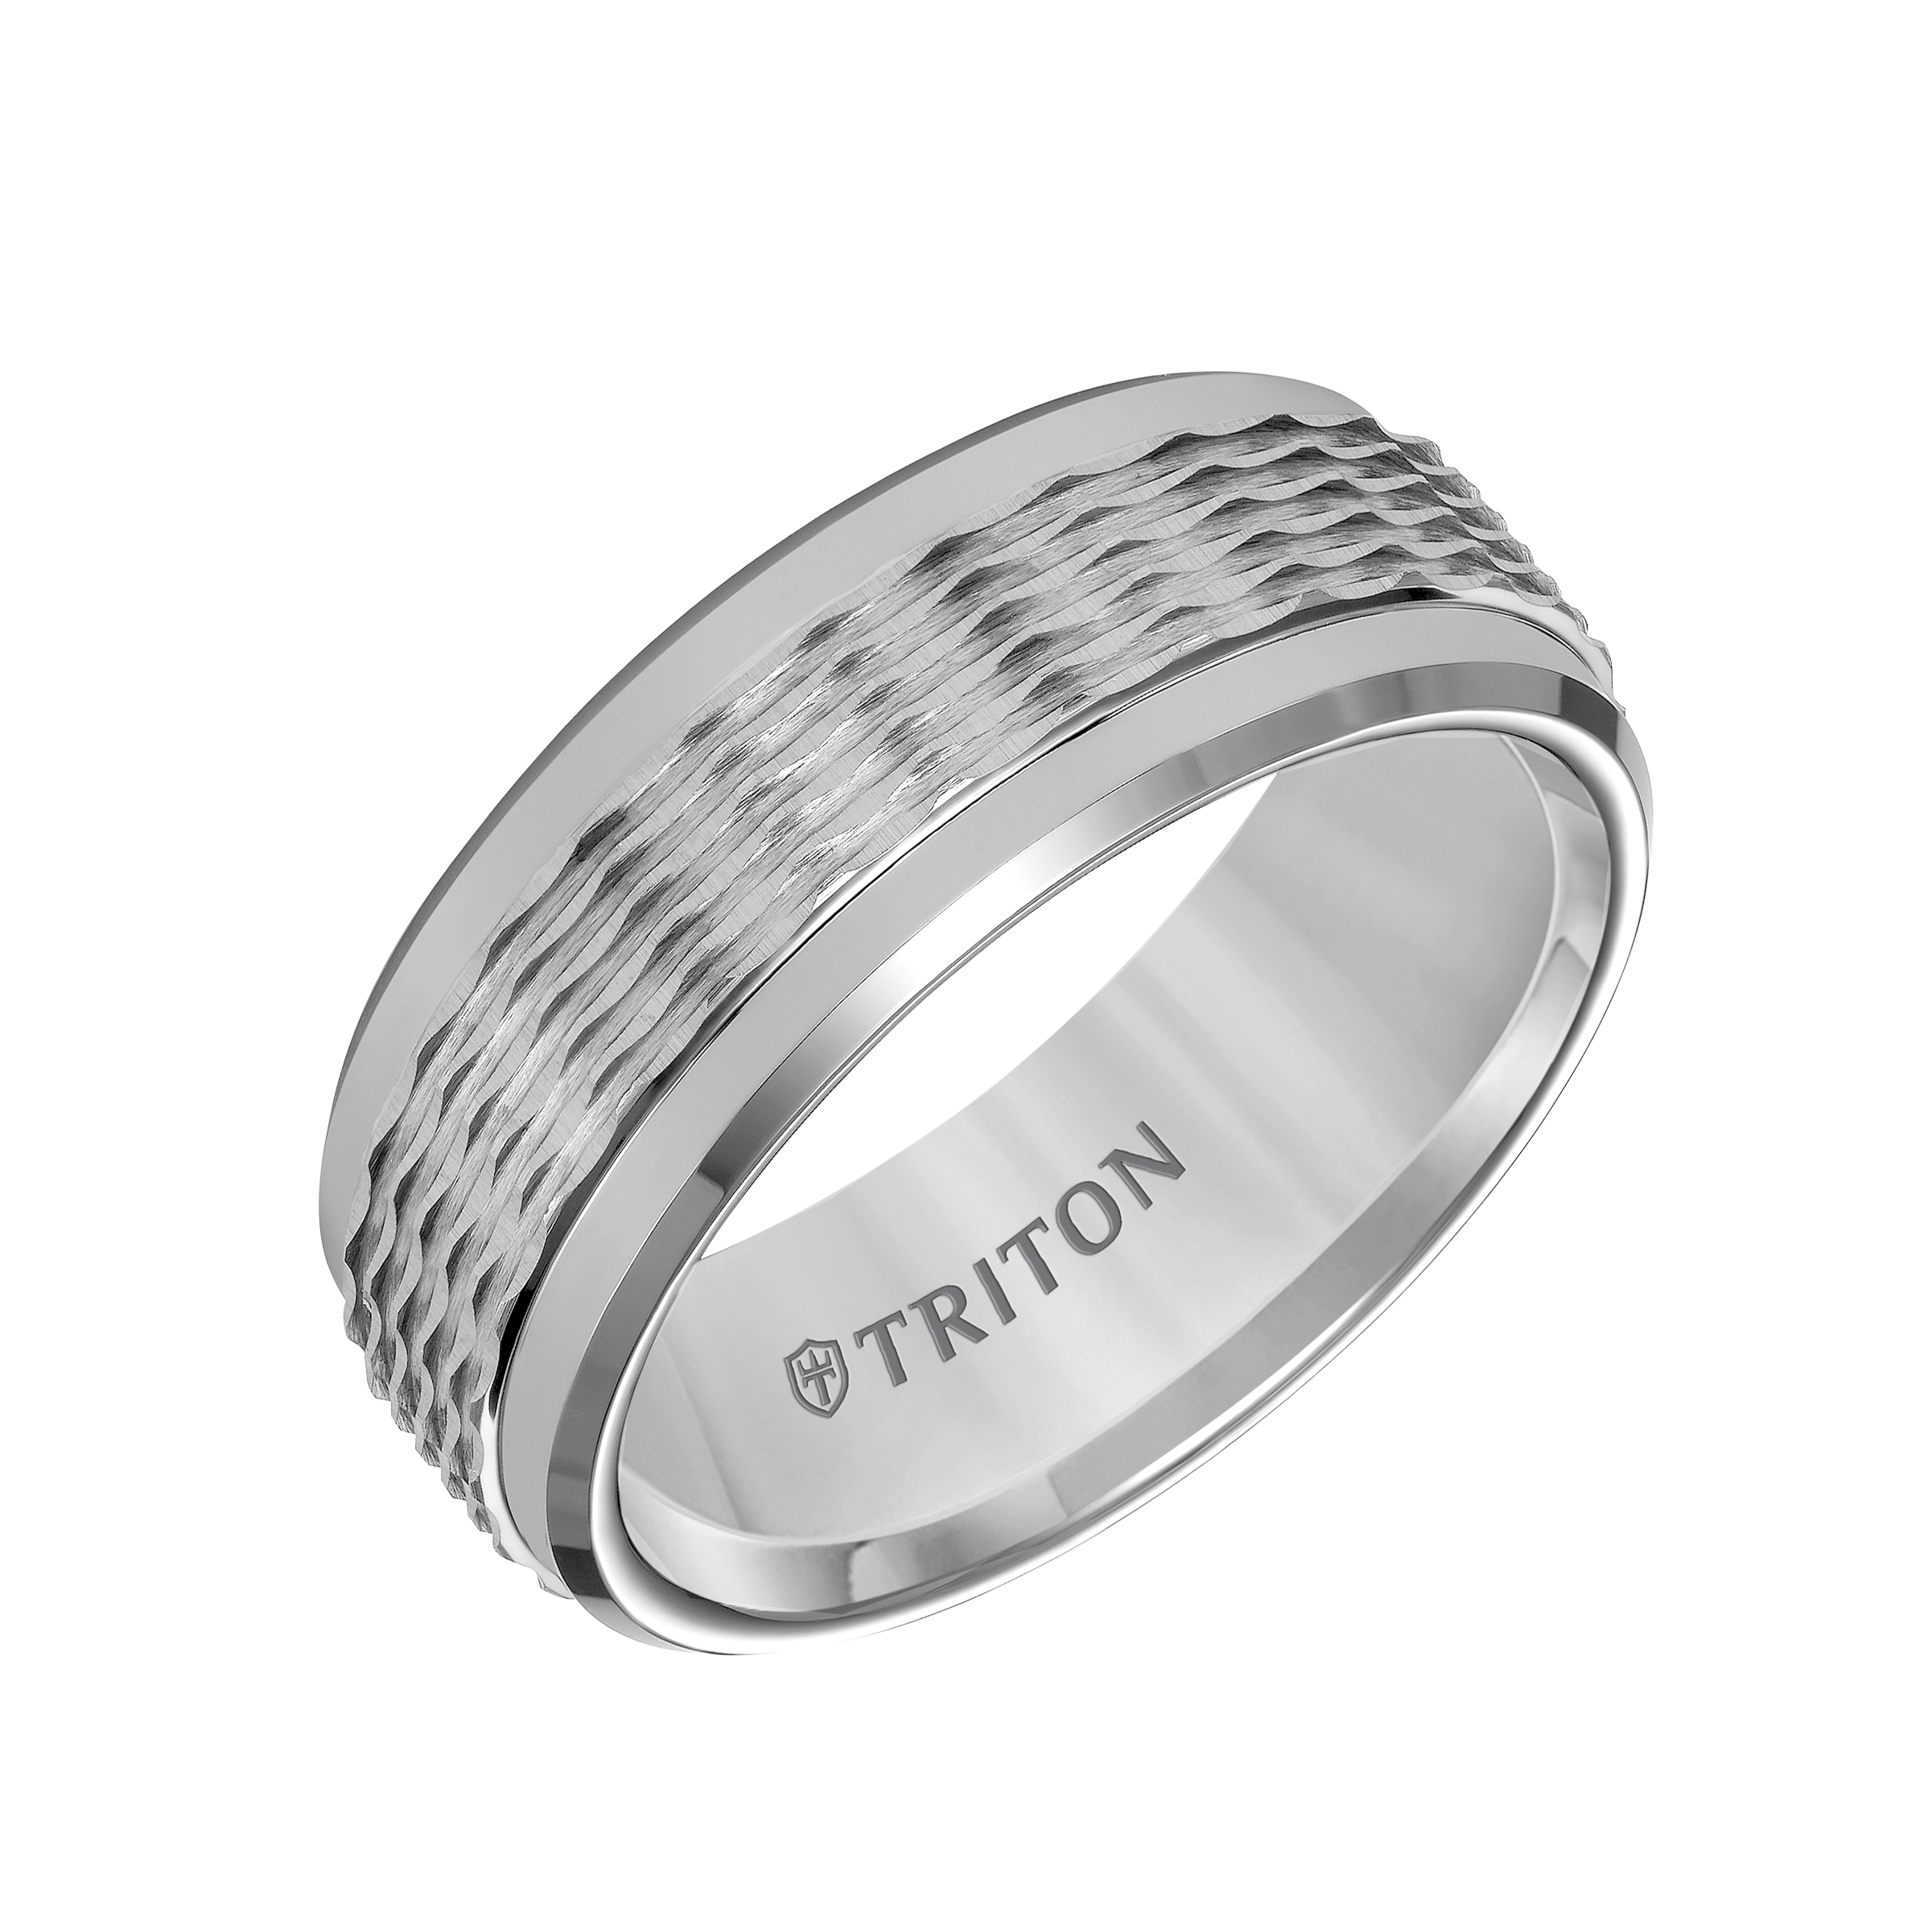 carbide zoom carbon mv tungsten for en zm jaredstore amp to rings fiber band triton jar him hover jared wedding